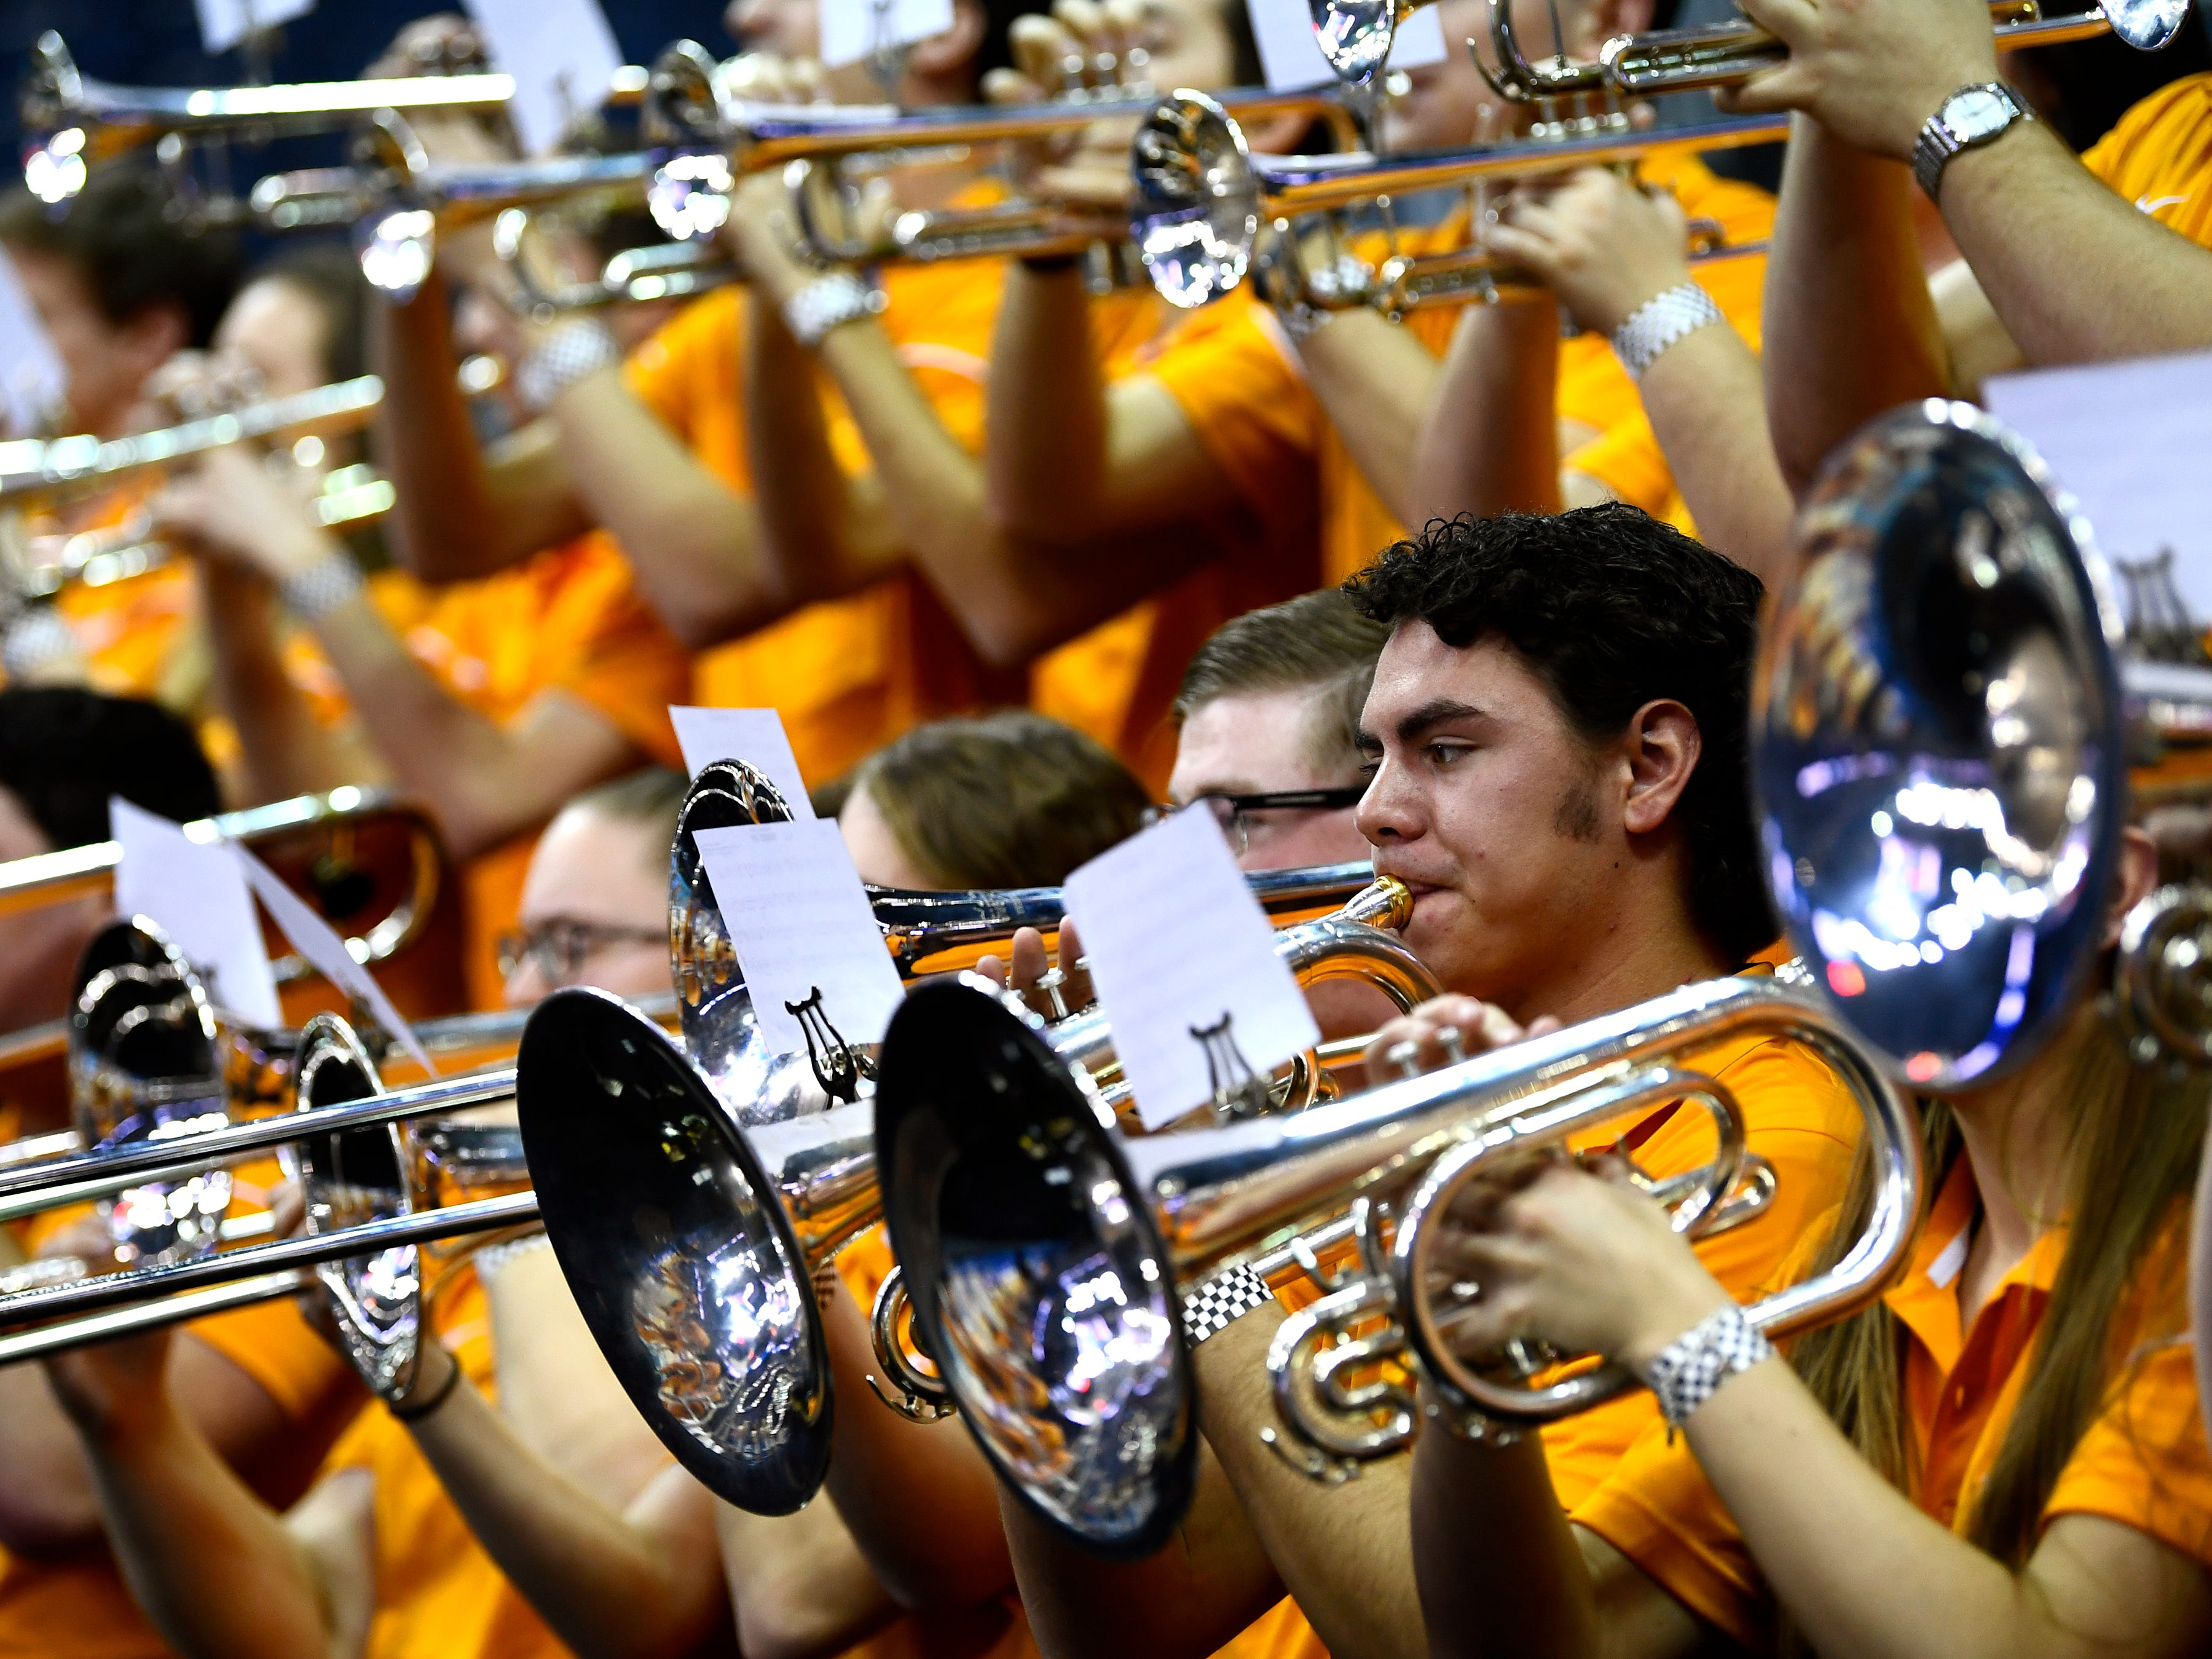 The Tennessee pep band plays during Tennessee's basketball practice on Thursday, March 21, 2019, before their first round NCAA Tournament game against Colgate at Nationwide Arena in Columbus, Ohio.